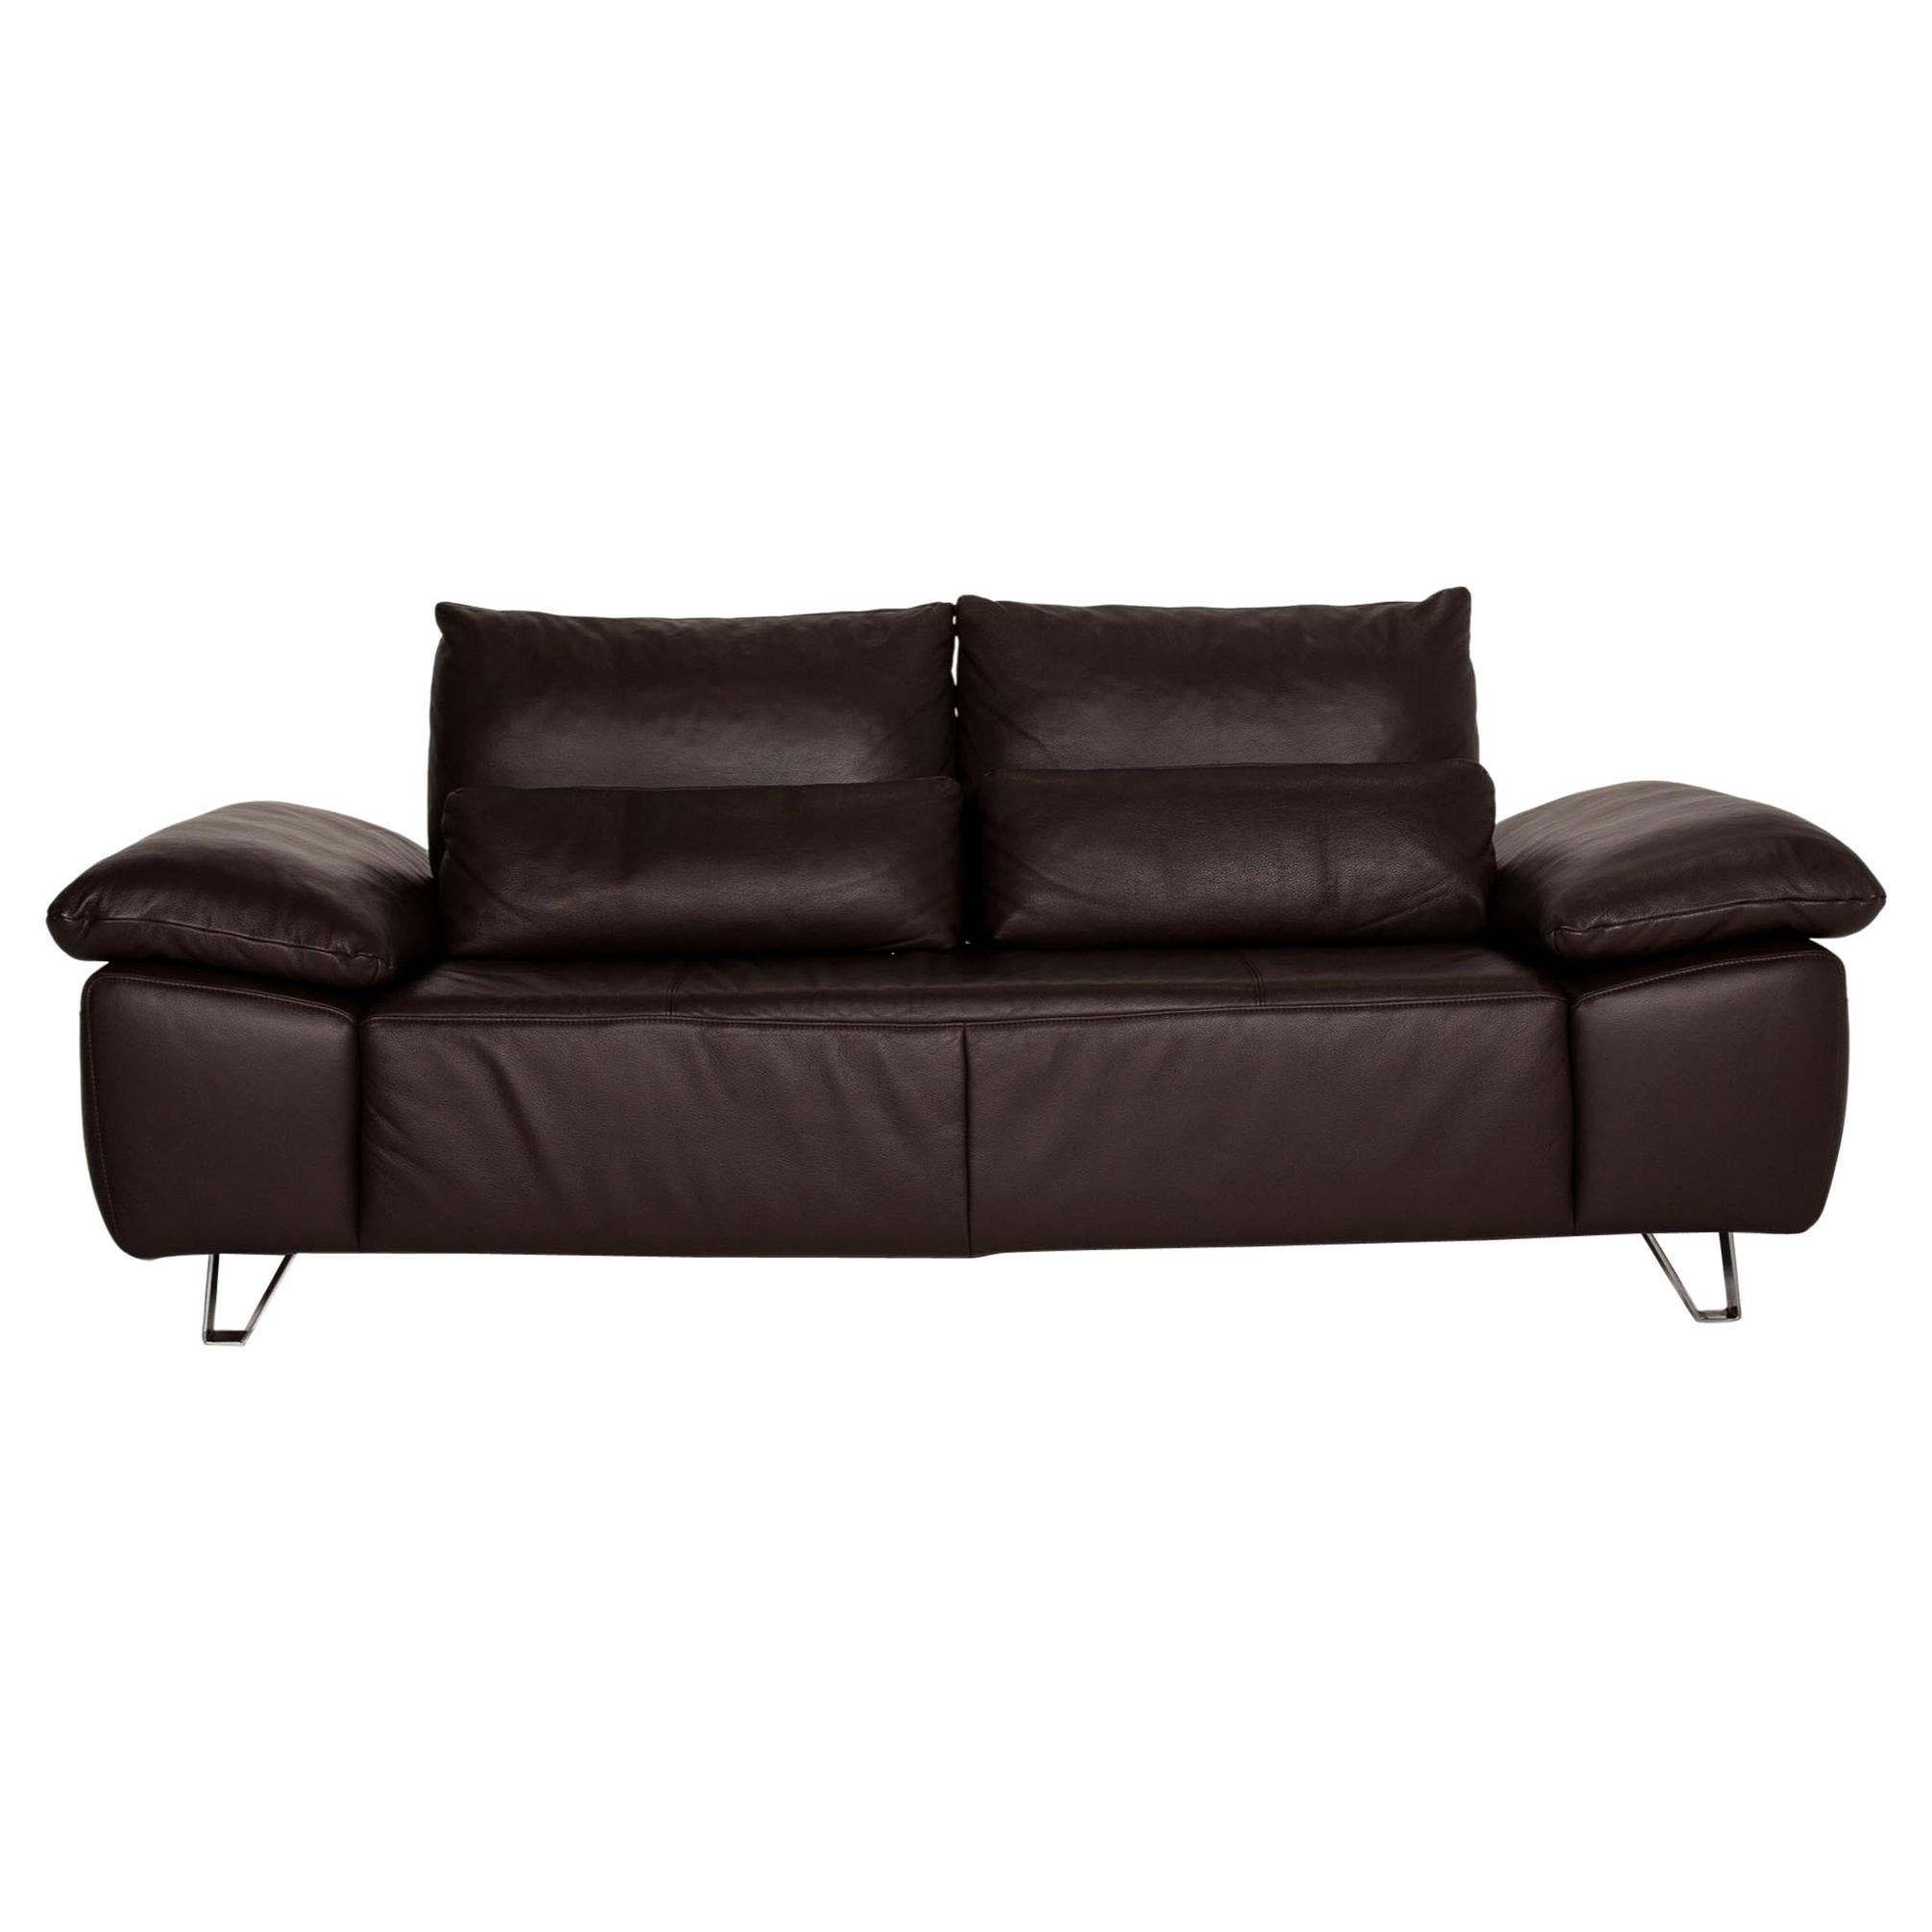 Musterring MR 680 Two-Seater Sofa Brown Leather Couch Function